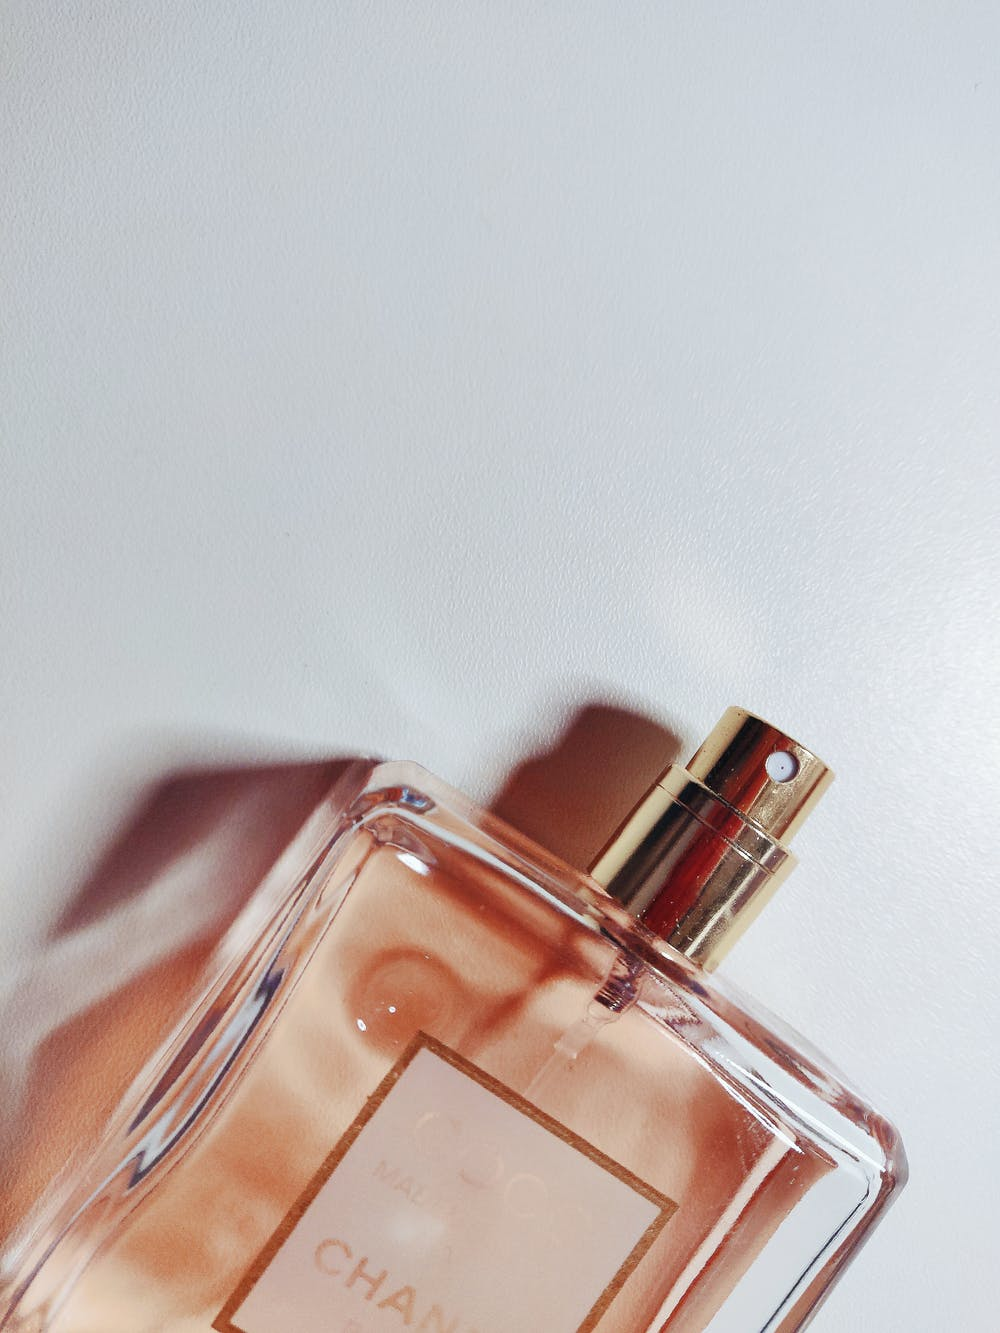 Top 5 Perfumes To Try